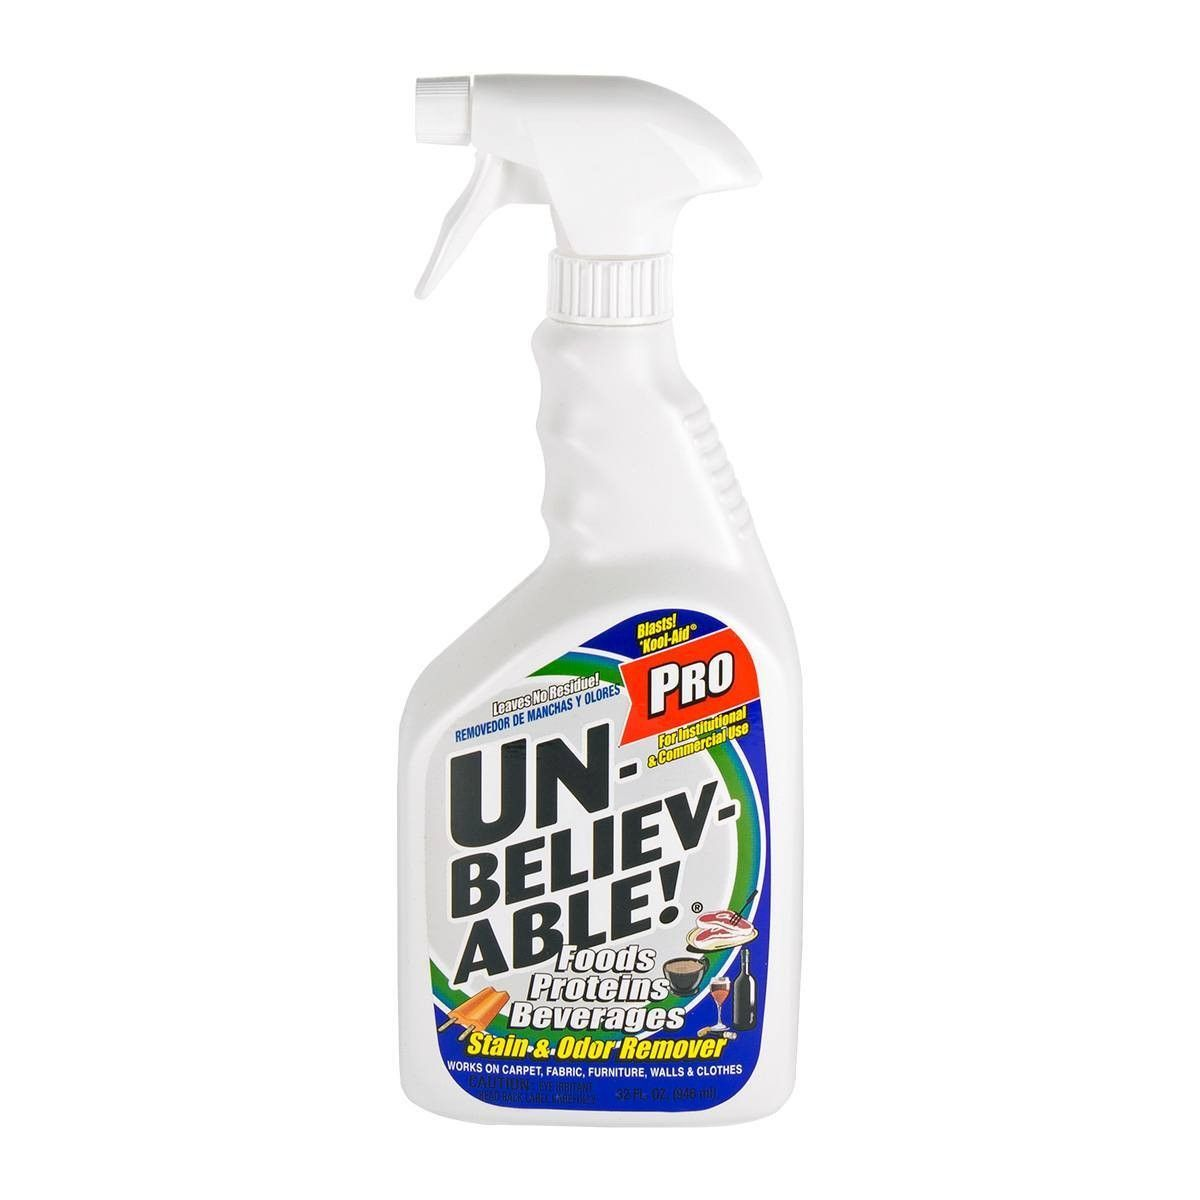 Unbelievable Food Protein Beverage Stain Remover 6 Quarts Stain Remover Carpet Stain Remover Stain Remover Spray